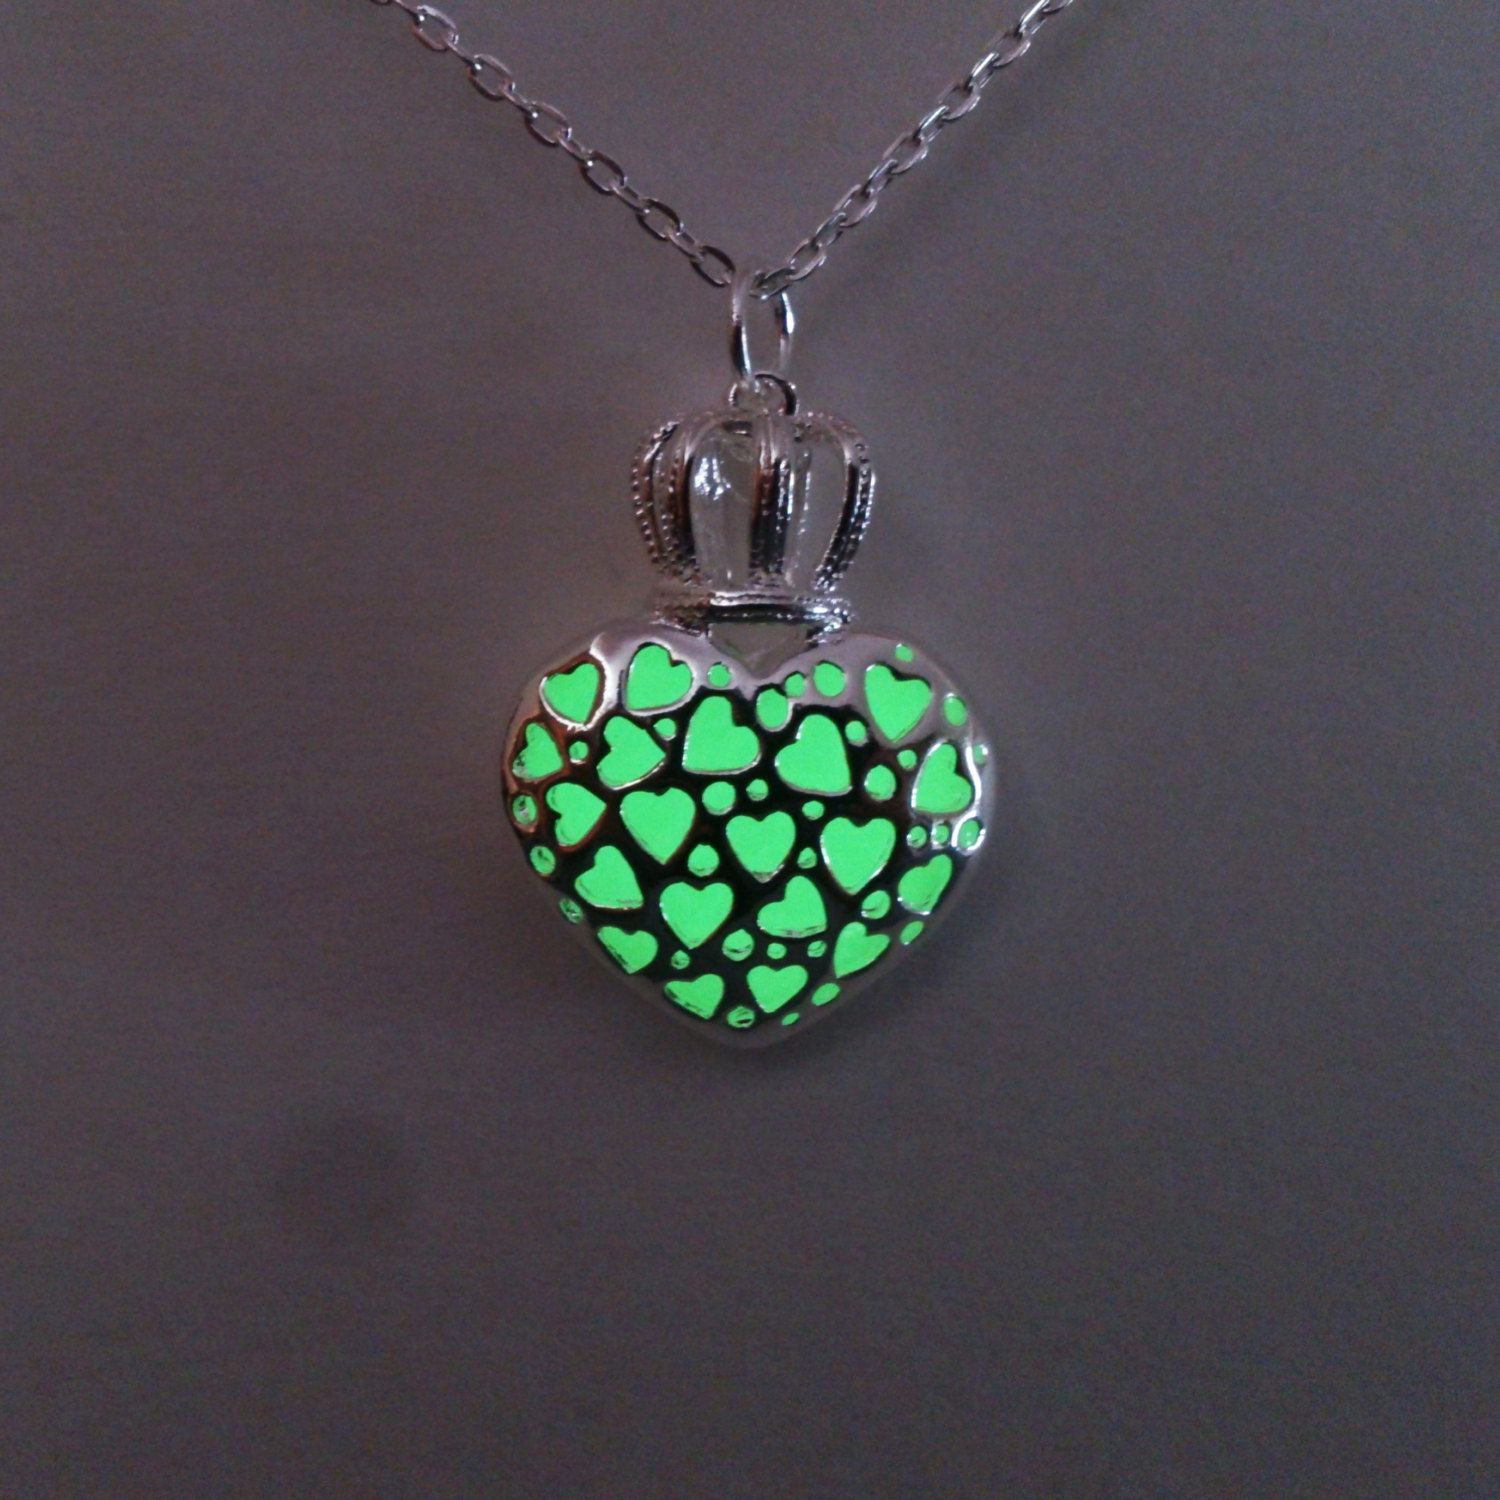 glowing plated from in silver jewelry necklaces vintage item hollow pendant pierced locket drop luminous water glow for dark women necklace